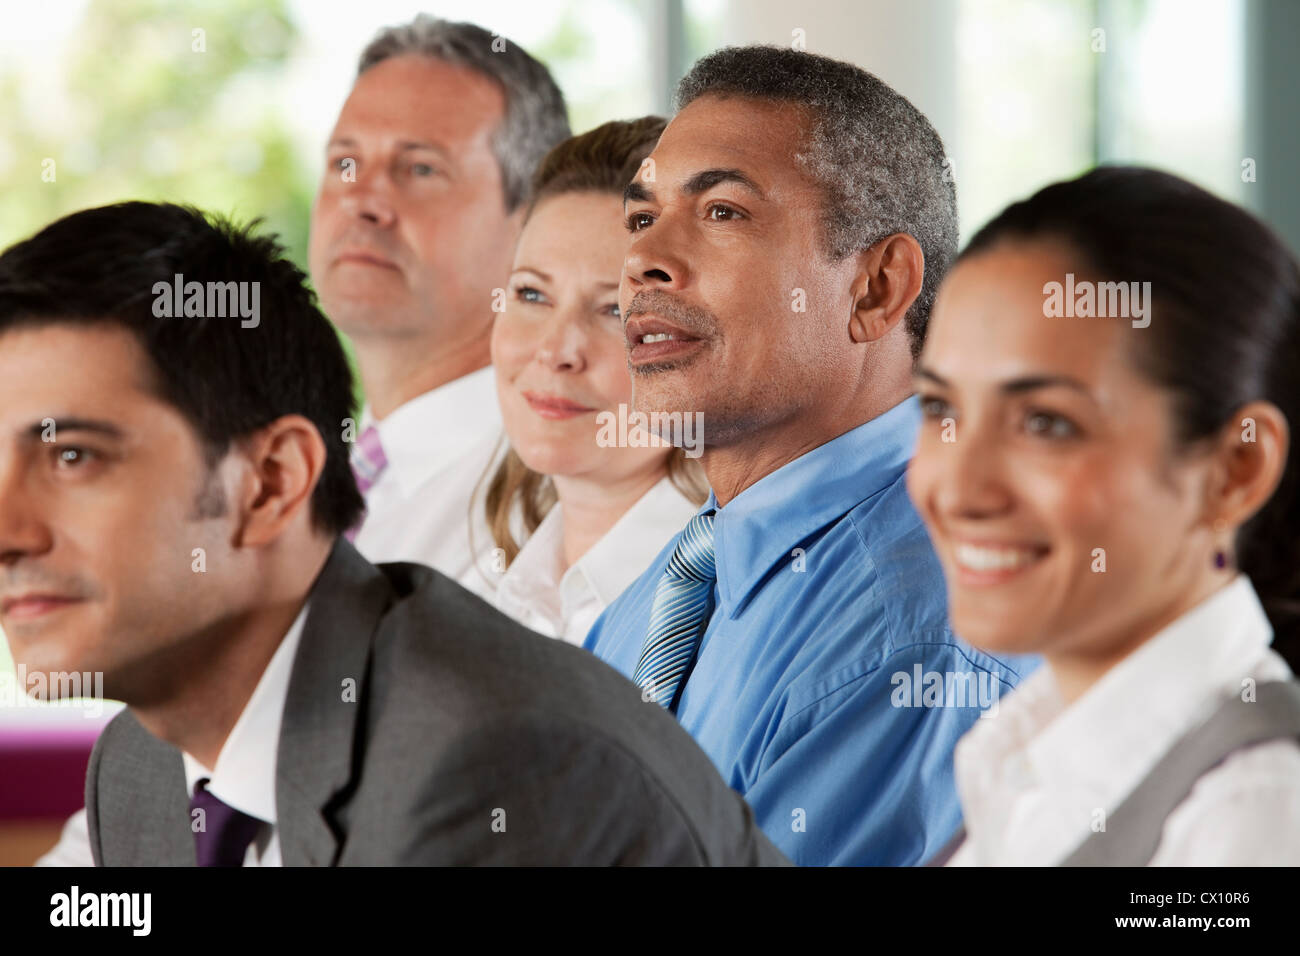 Businesspeople at presentation - Stock Image